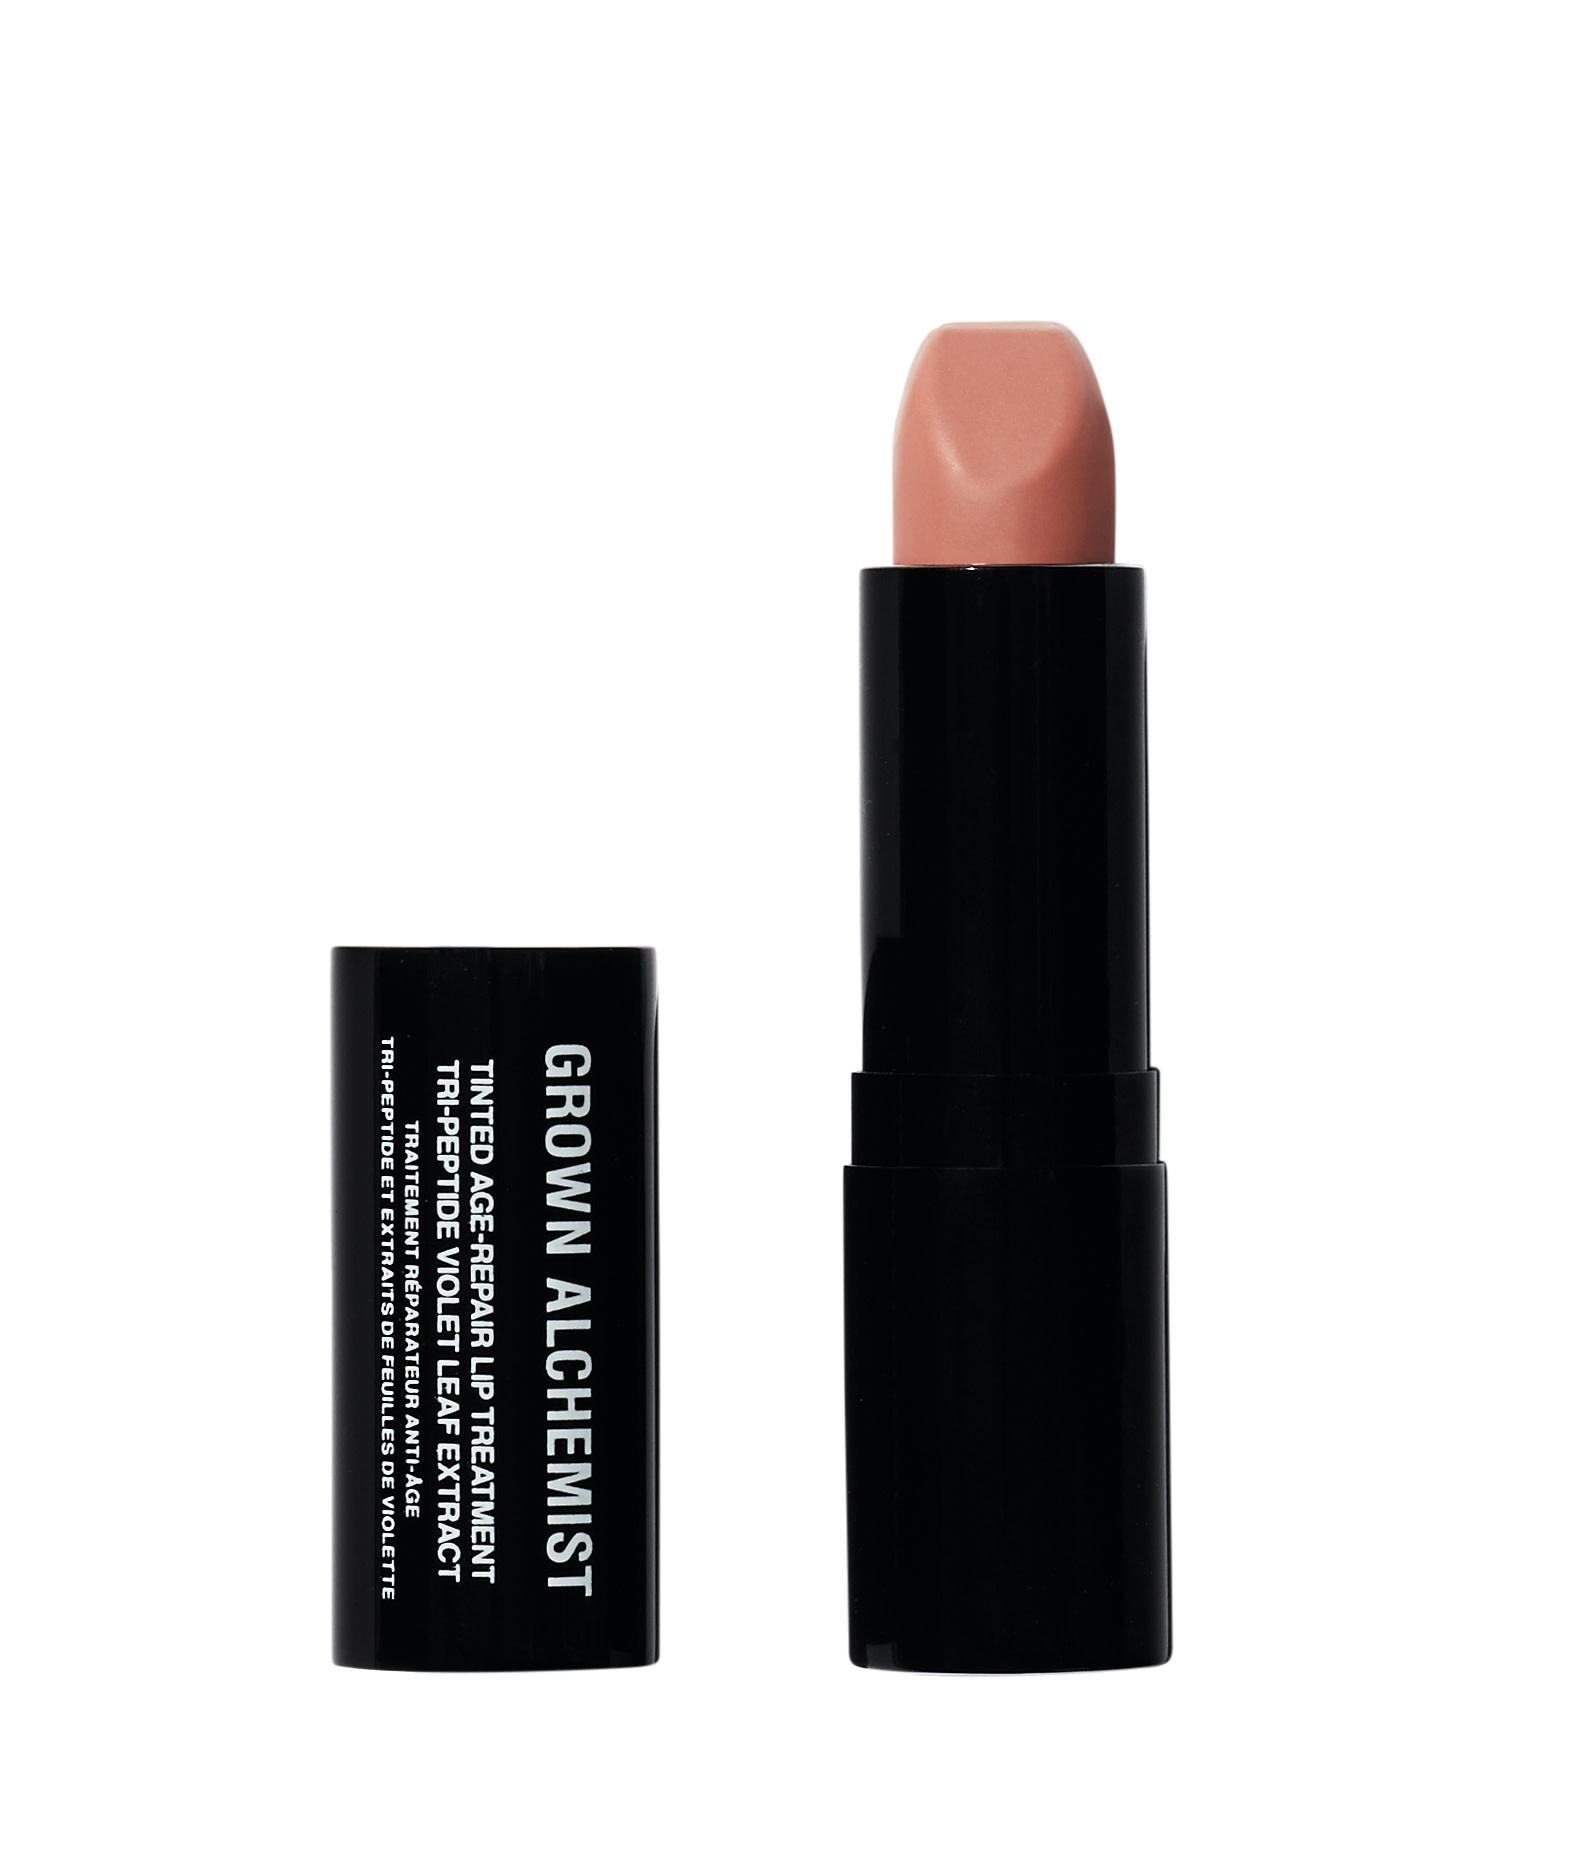 Tinted age-repair lip treatment-1